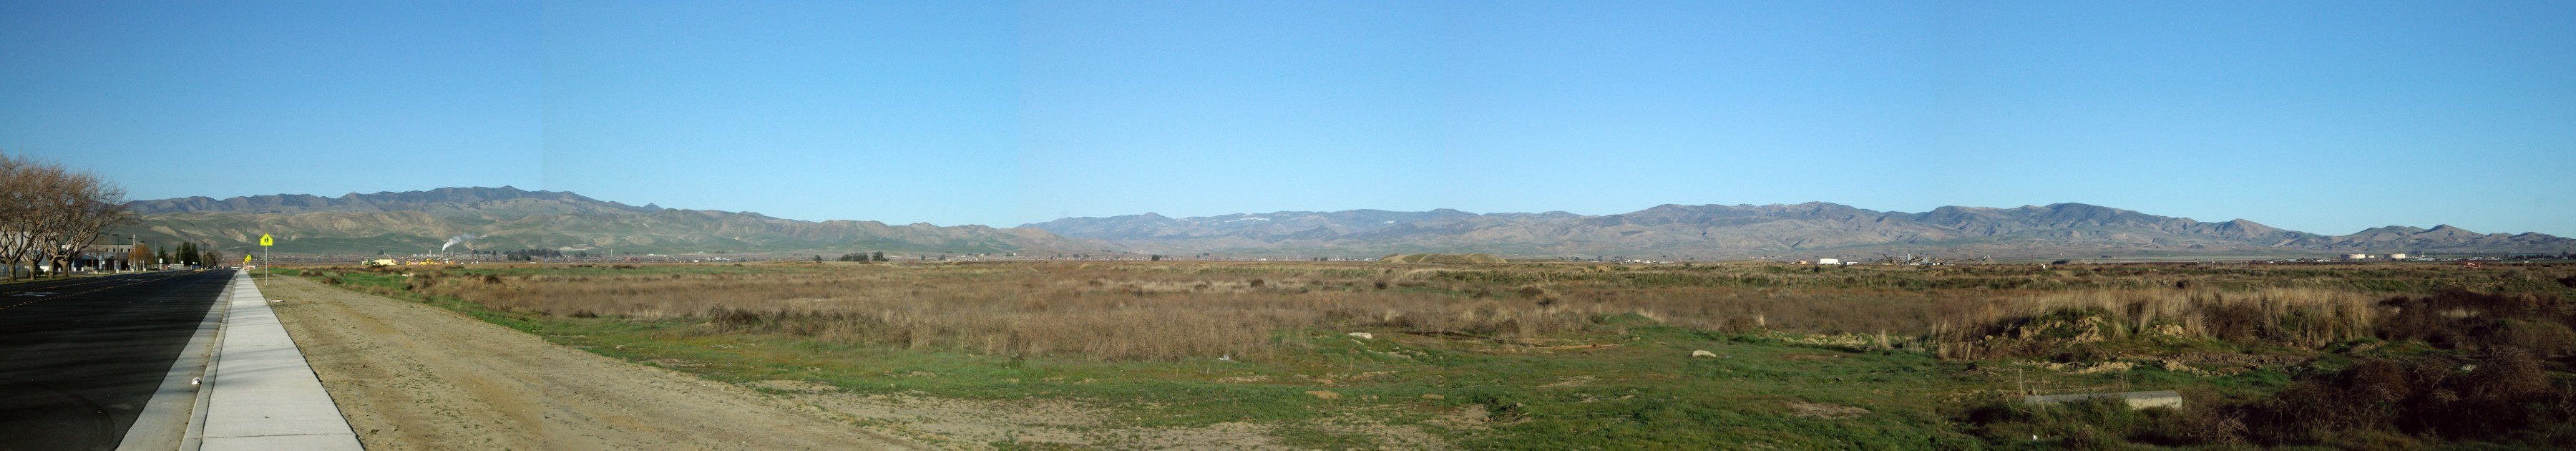 Pleasant Valley, Coalinga, Fresno County, California